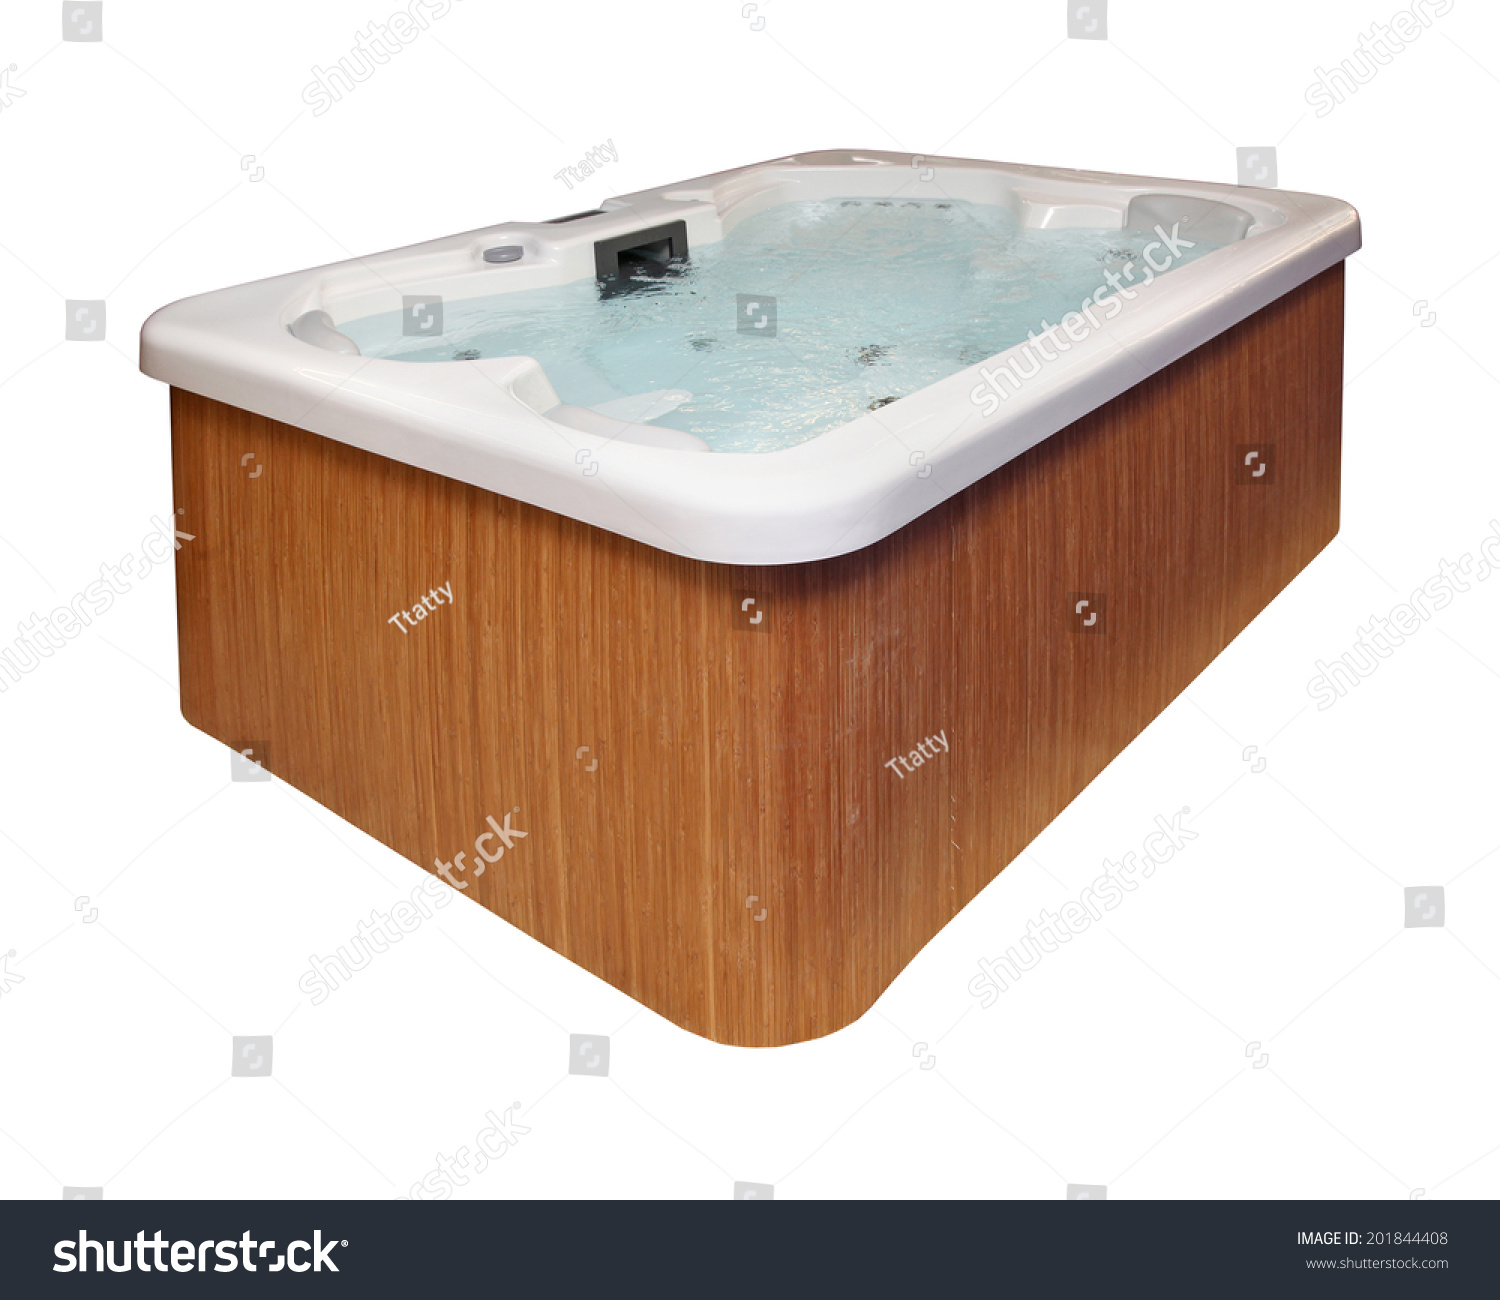 modern hot tub with wooden frame isolated with clipping path included stock photo 201844408. Black Bedroom Furniture Sets. Home Design Ideas